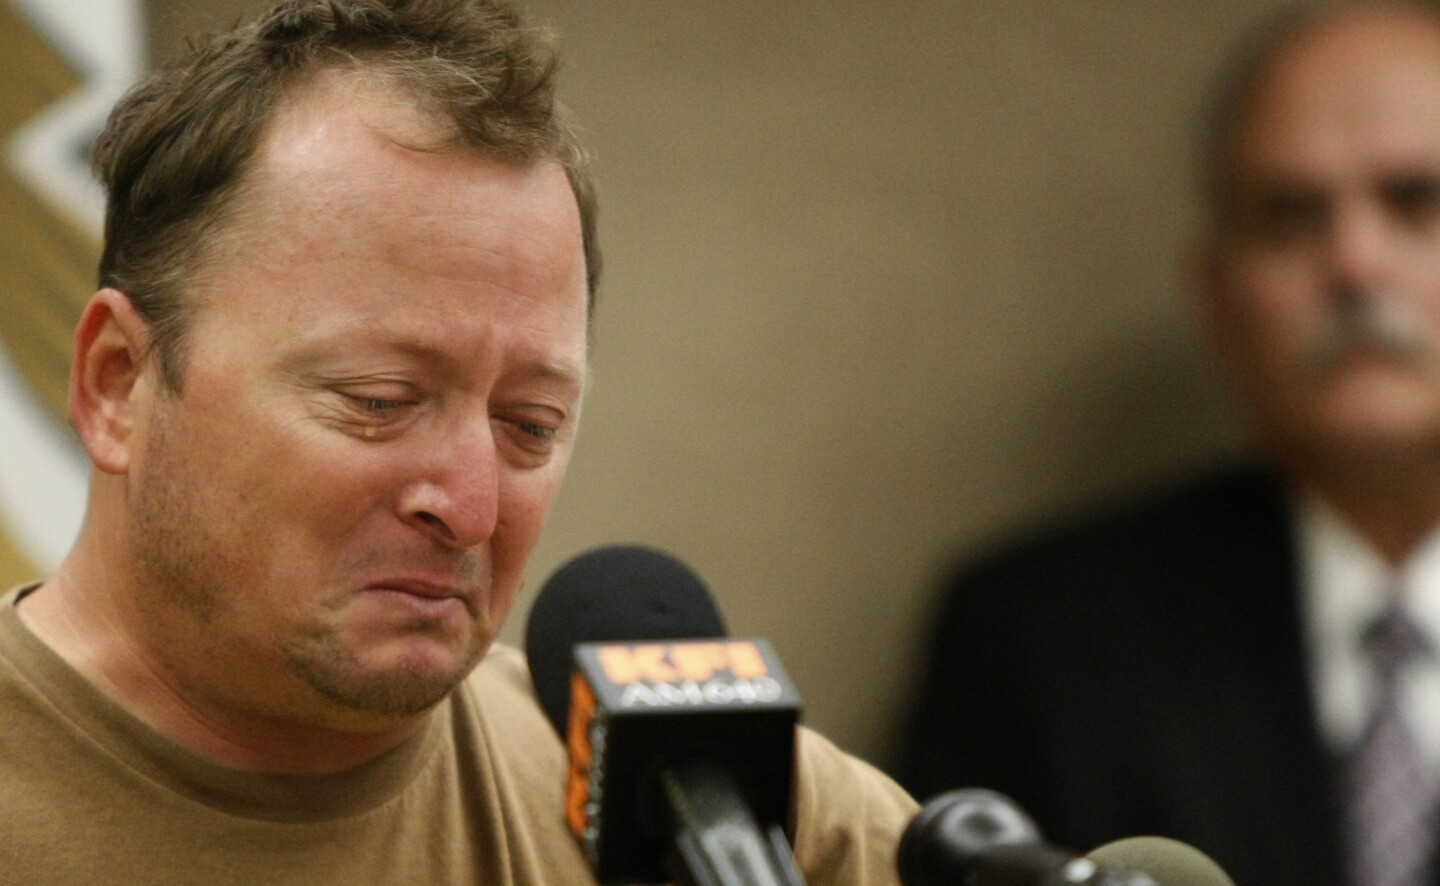 """""""It's not really the outcome we were looking for,"""" Michael McStay said during a news conference in November 2013 after the remains of his brother, sister-in-law and nephews were identified. """"But it gives us courage to know they're together and they're in a better place."""""""